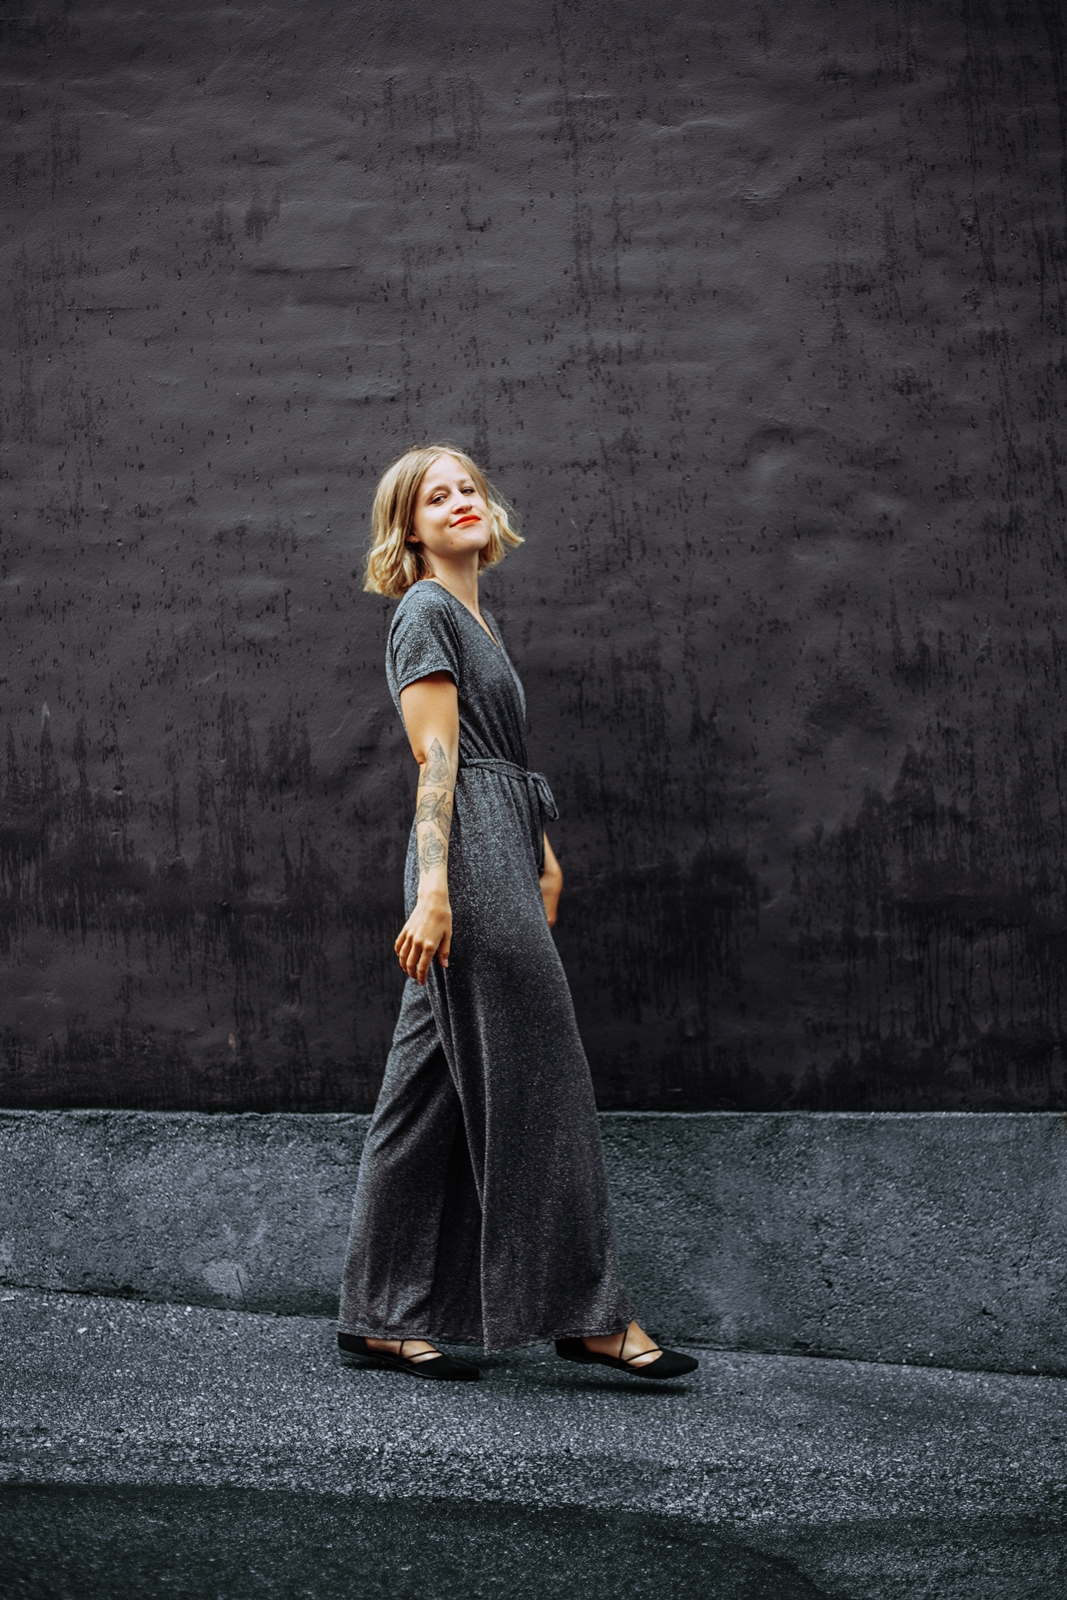 Dressed up for party in a black glitter jumpsuit from femme luxe finery.